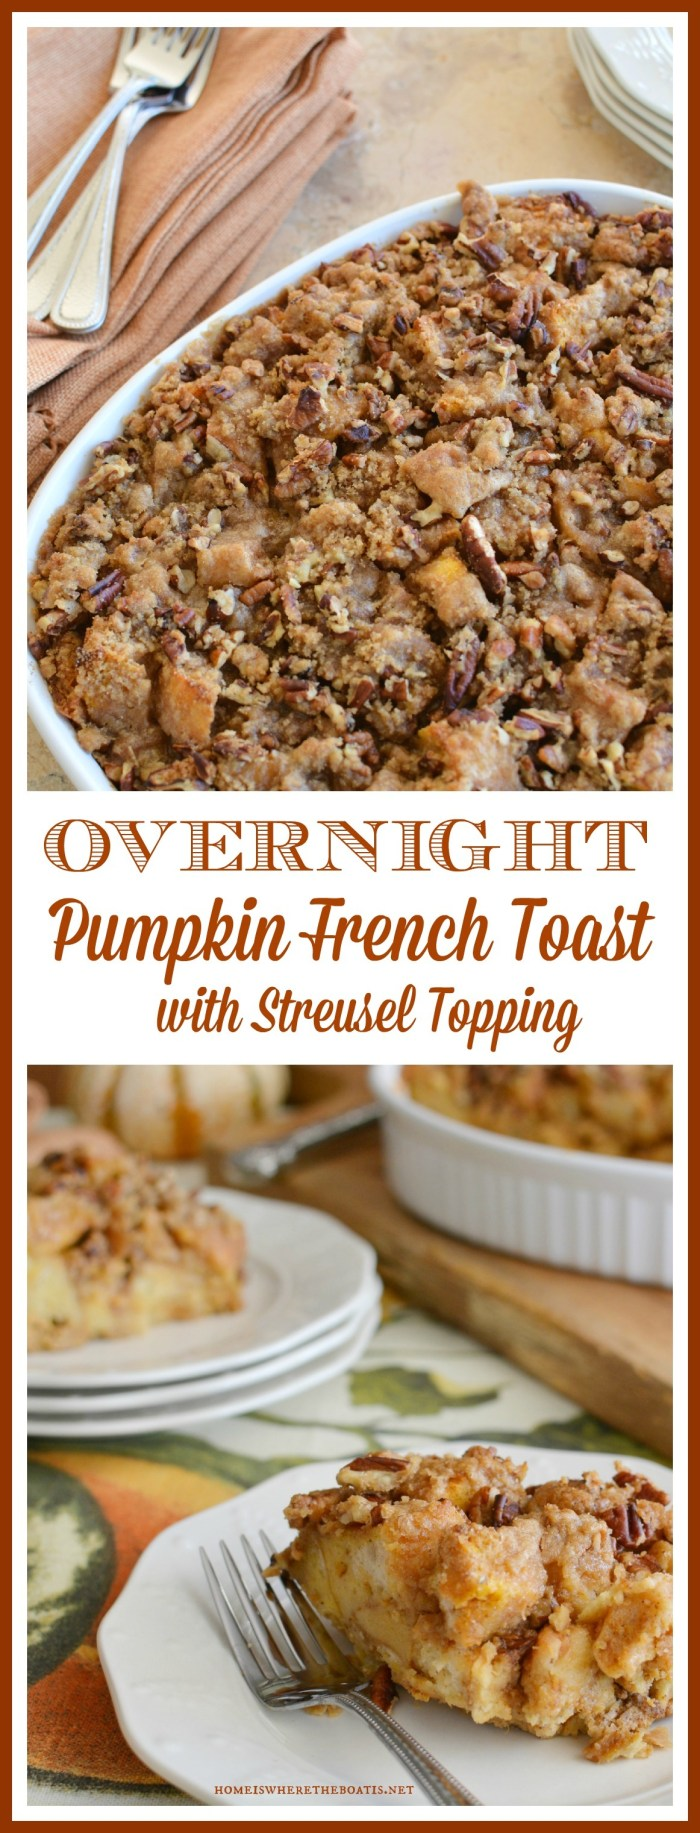 Overnight Pumpkin French Toast with Streusel Topping! A make-ahead French toast casserole for fall, infused with pumpkin flavor with a sweet streusel topping #pumpkin #brunch #recipe #frenchtoast #makeahead